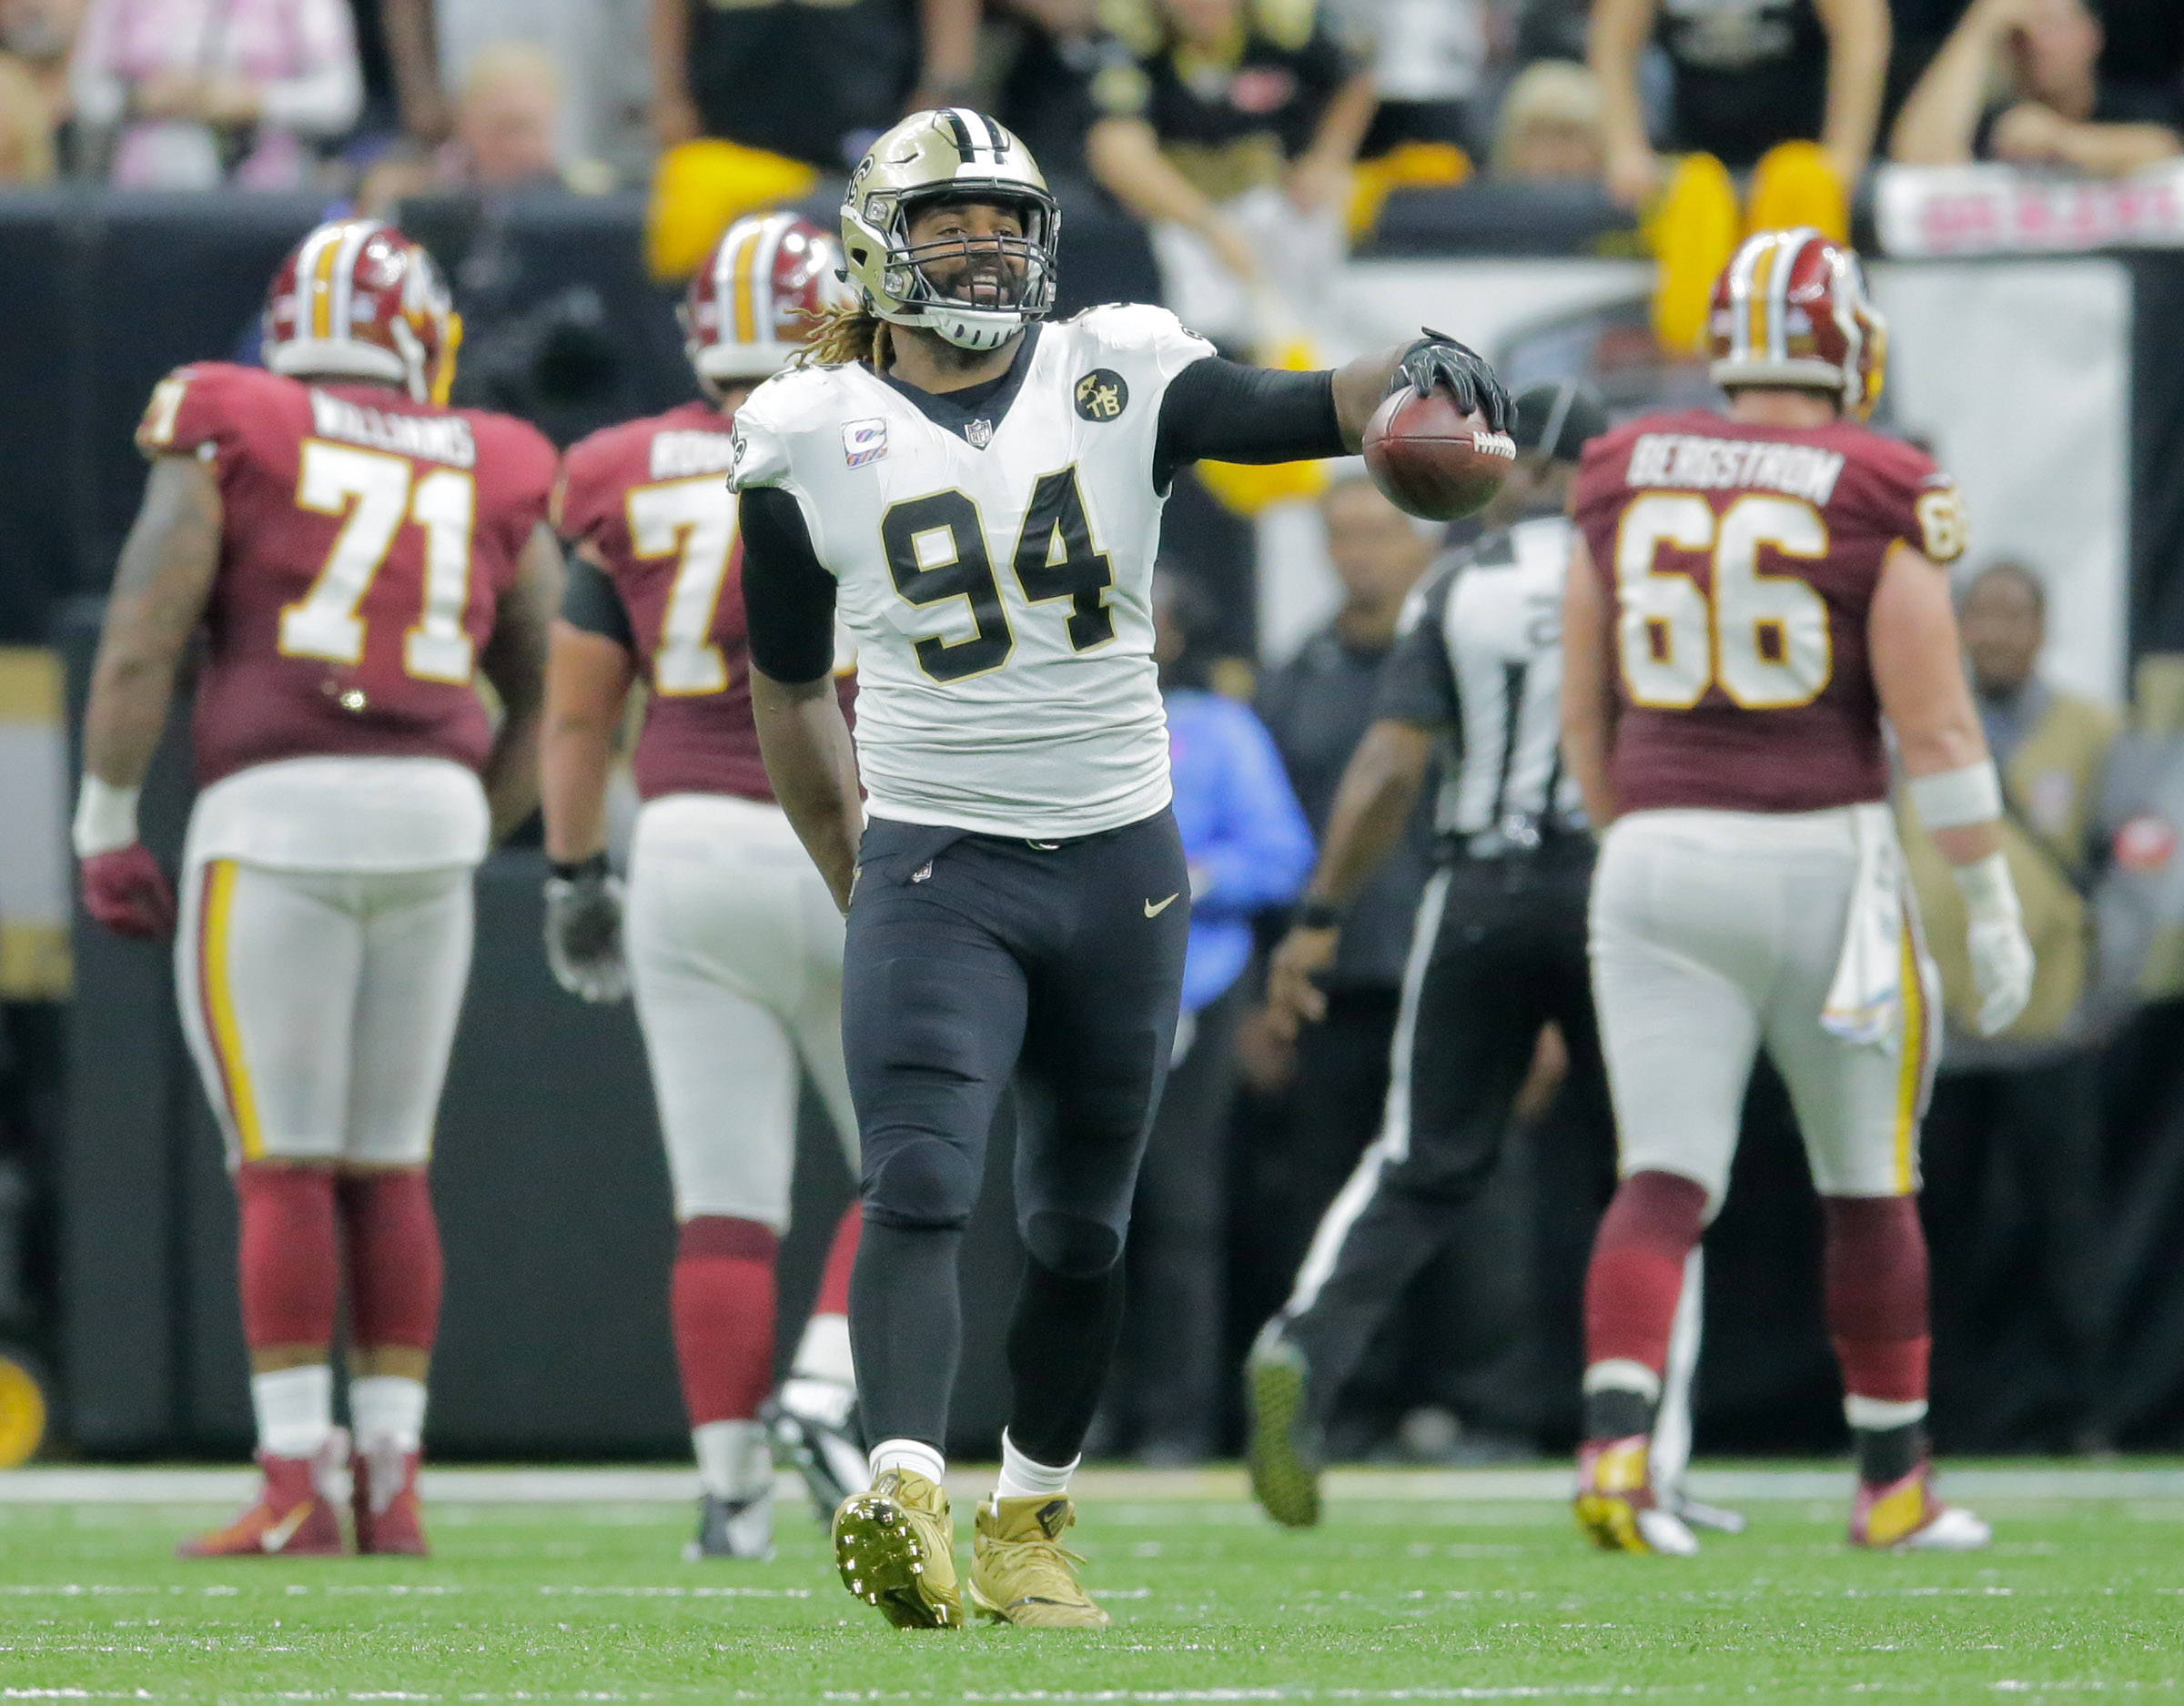 New Orleans Saints defensive end Cameron Jordan celebrates after helping stop the Washington Redskins during the game Monday.